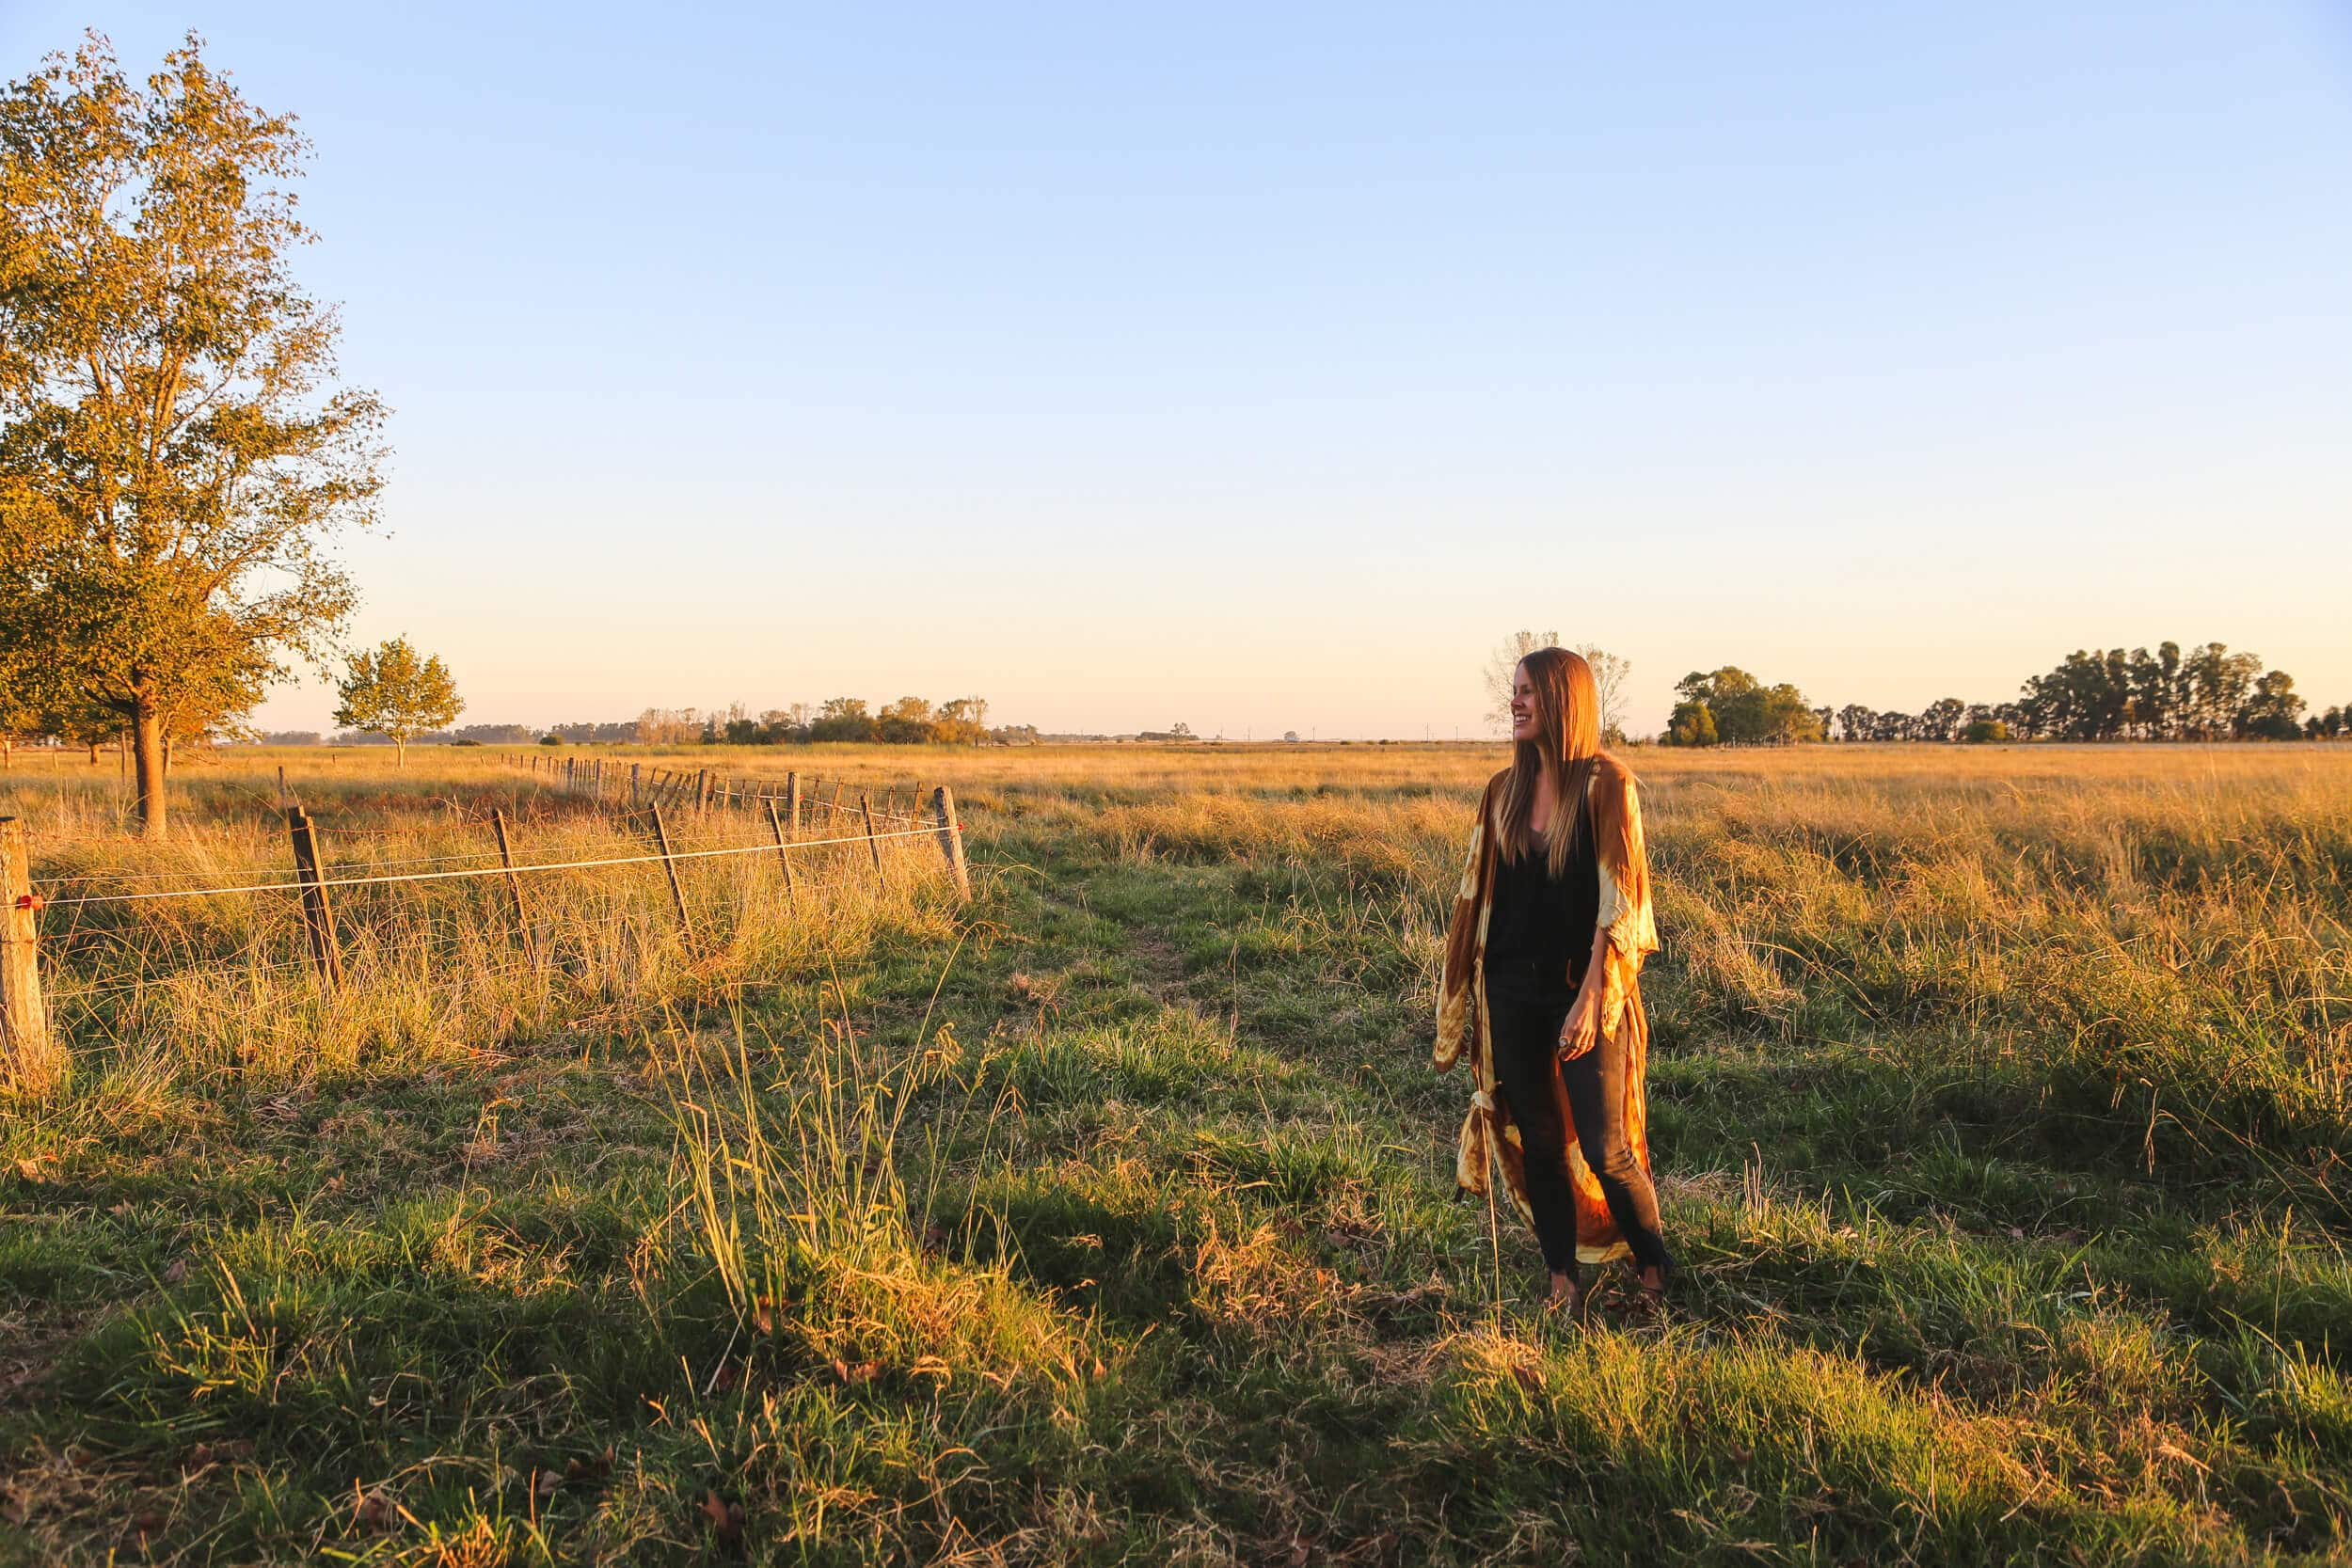 A woman stands in a pasture at sunset